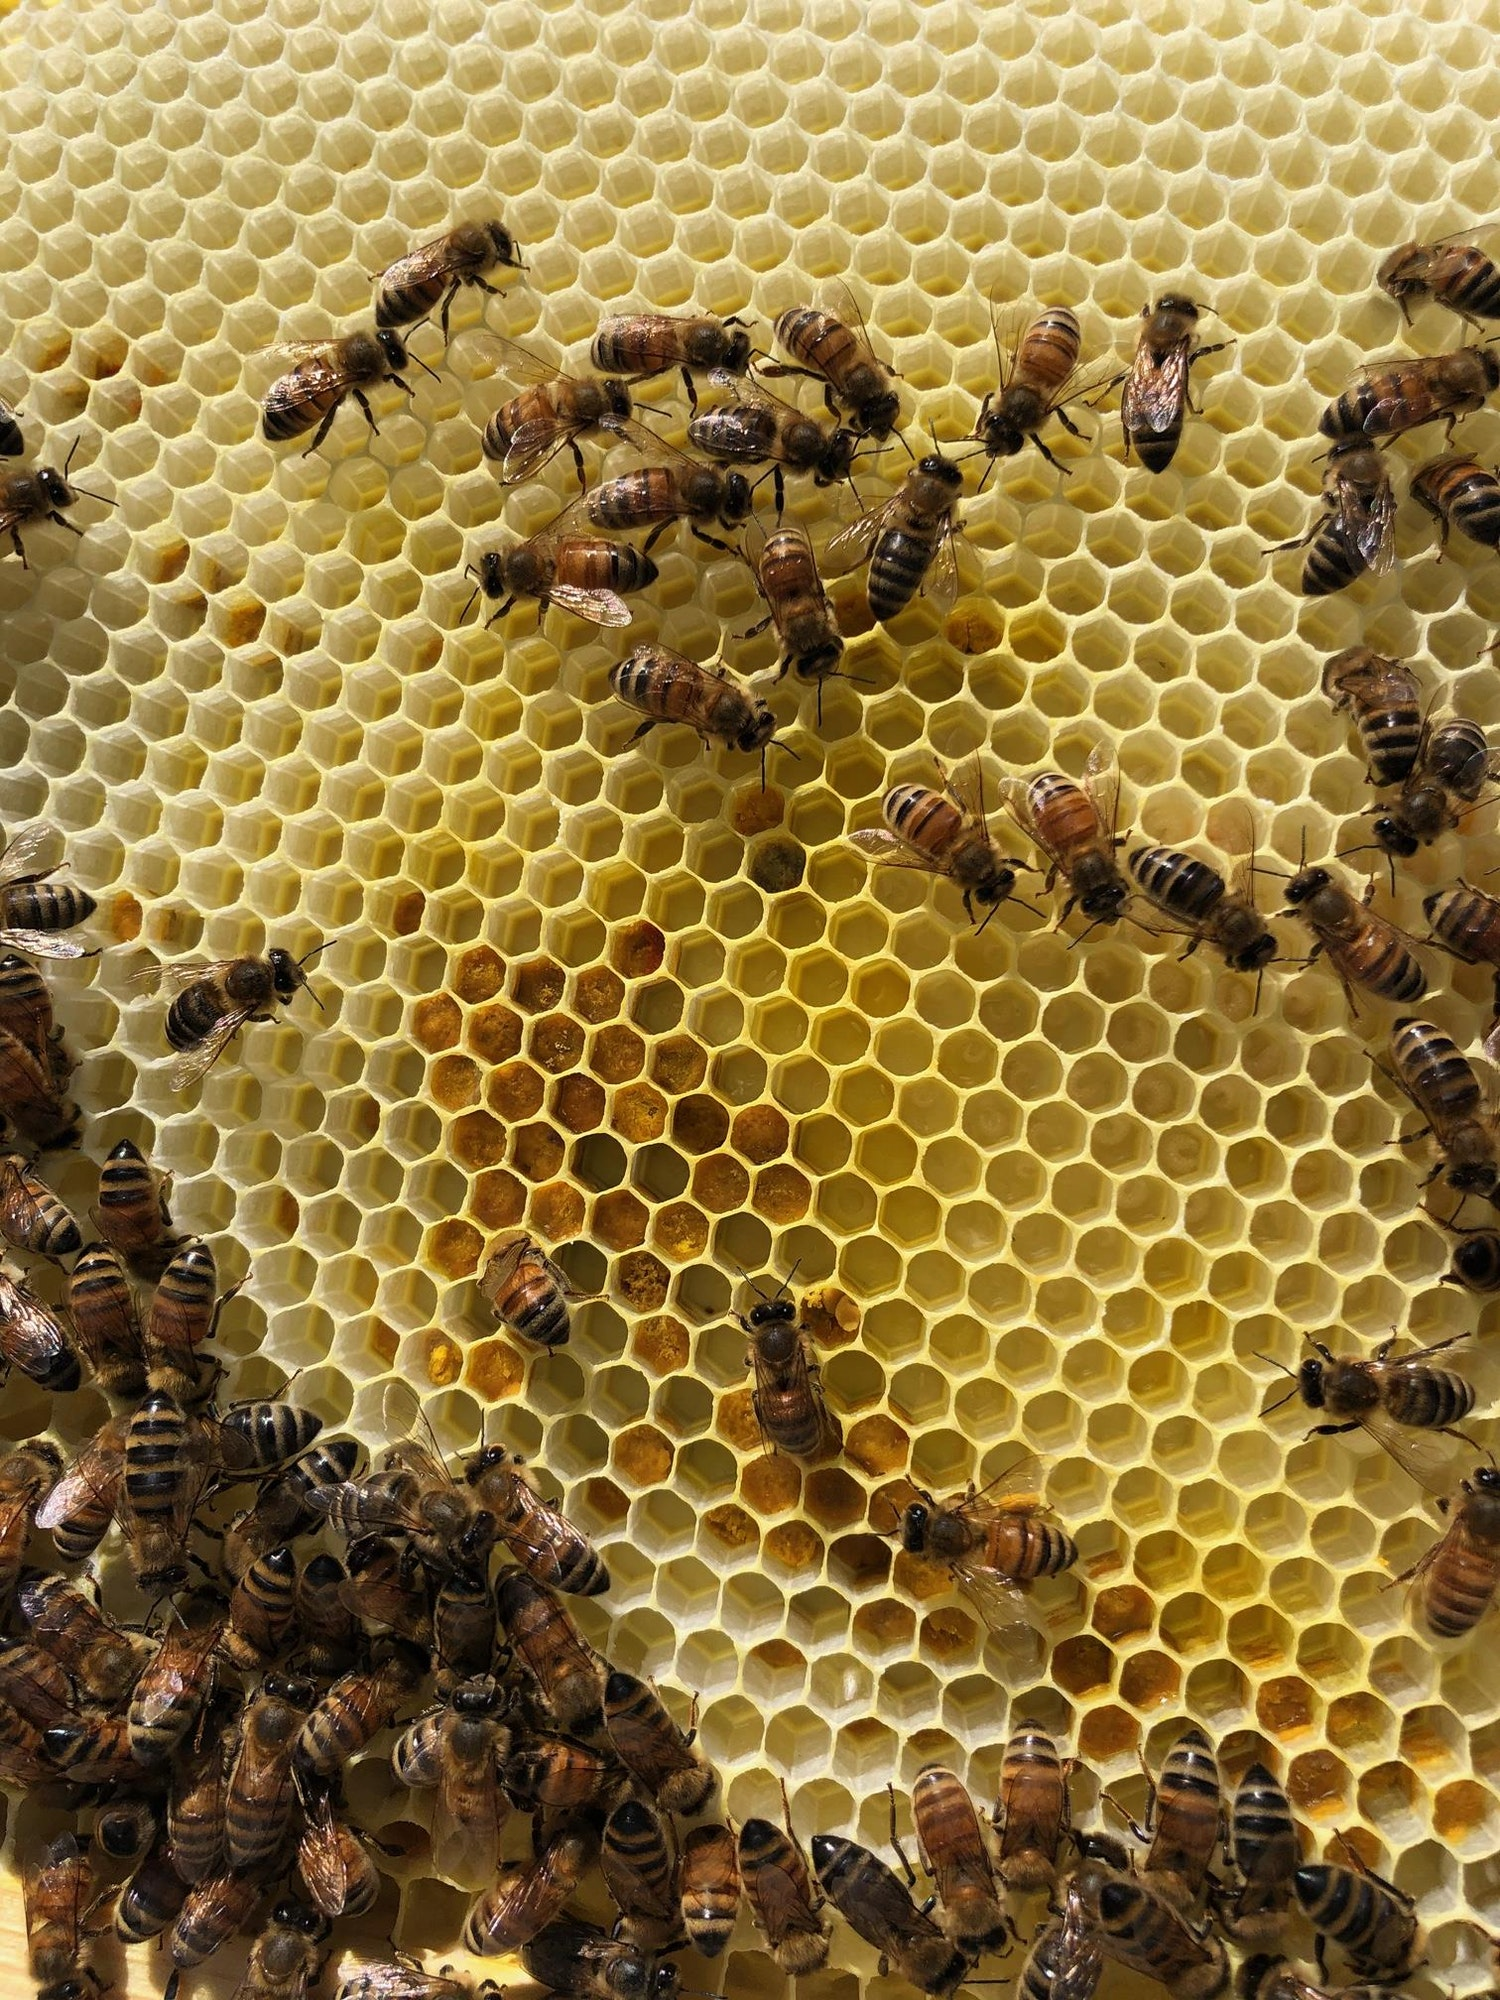 May contain: honey bee, animal, invertebrate, insect, and bee